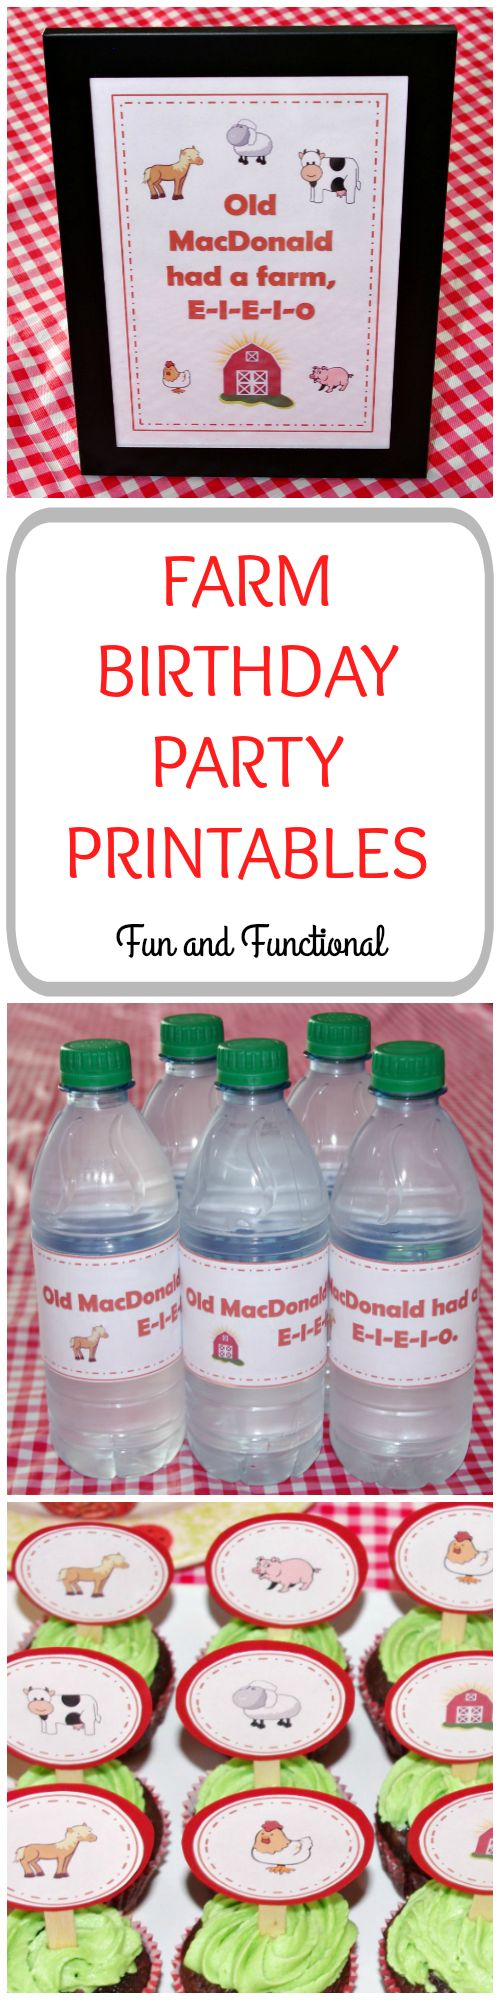 Farm, Birthday Party, Farm Theme, Free Printables, First Birthday, Cupcake Toppers, Farm Cupcakes, Water Bottle Wrappers, E-I-E-I-O, Farm Décor, Old MacDonald